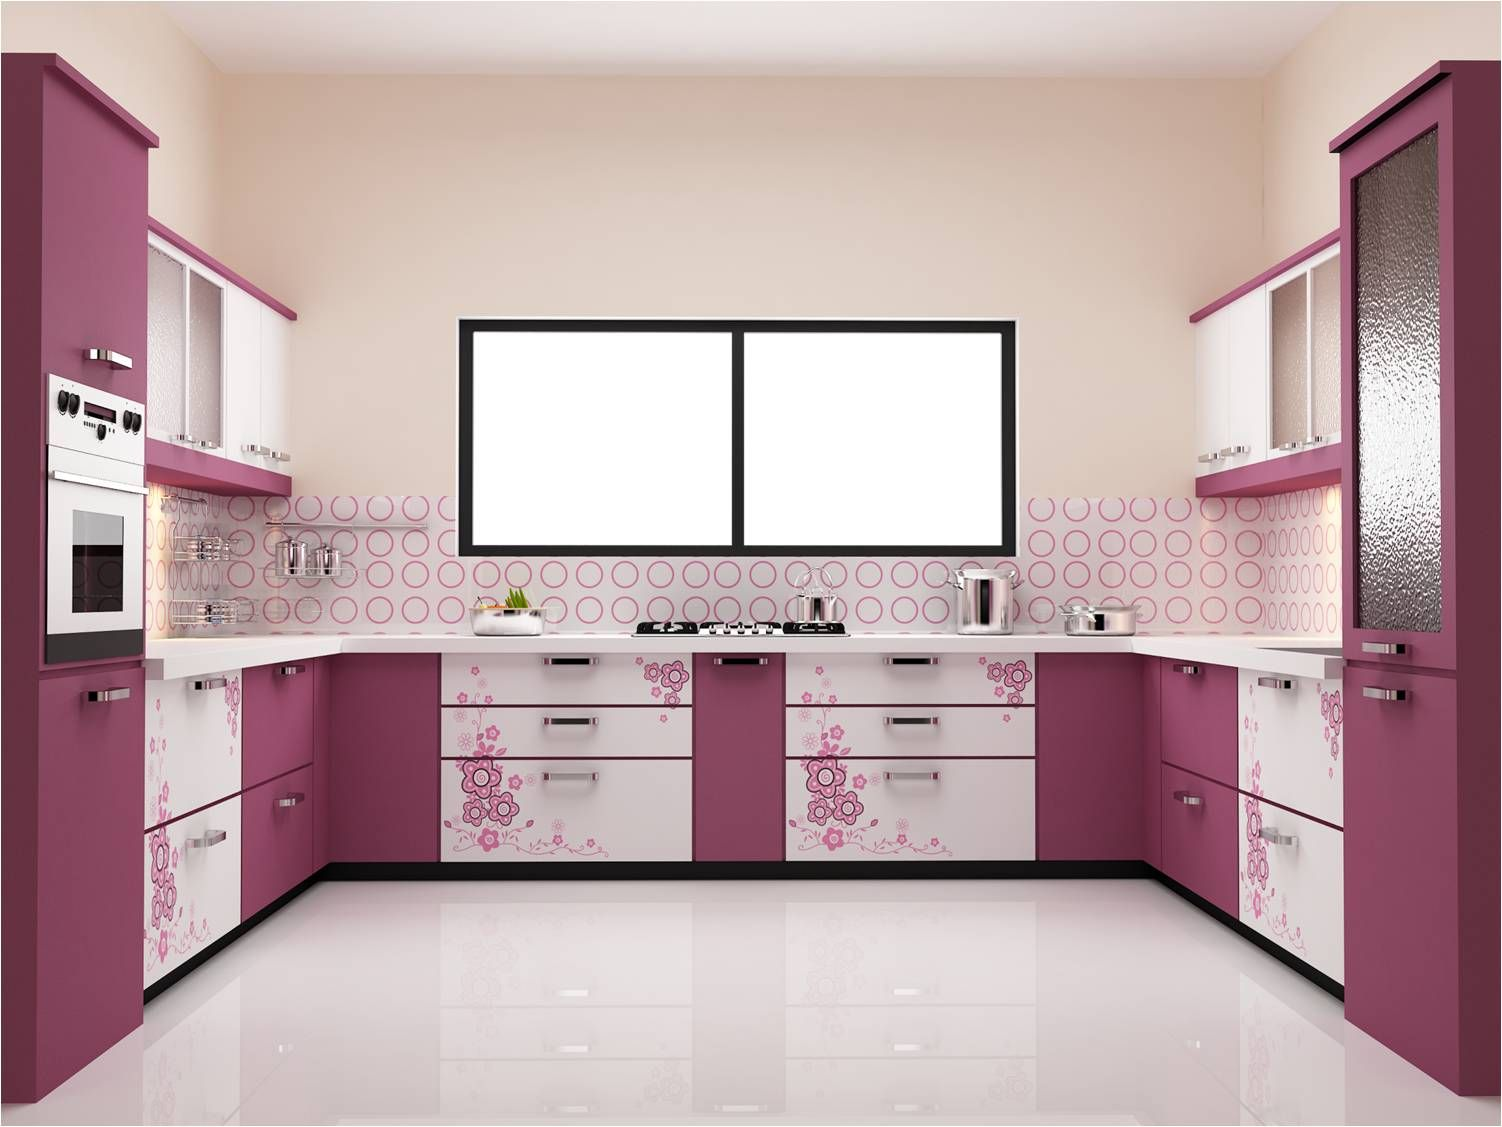 Explore Purple Kitchen Cabinets And More German Designs